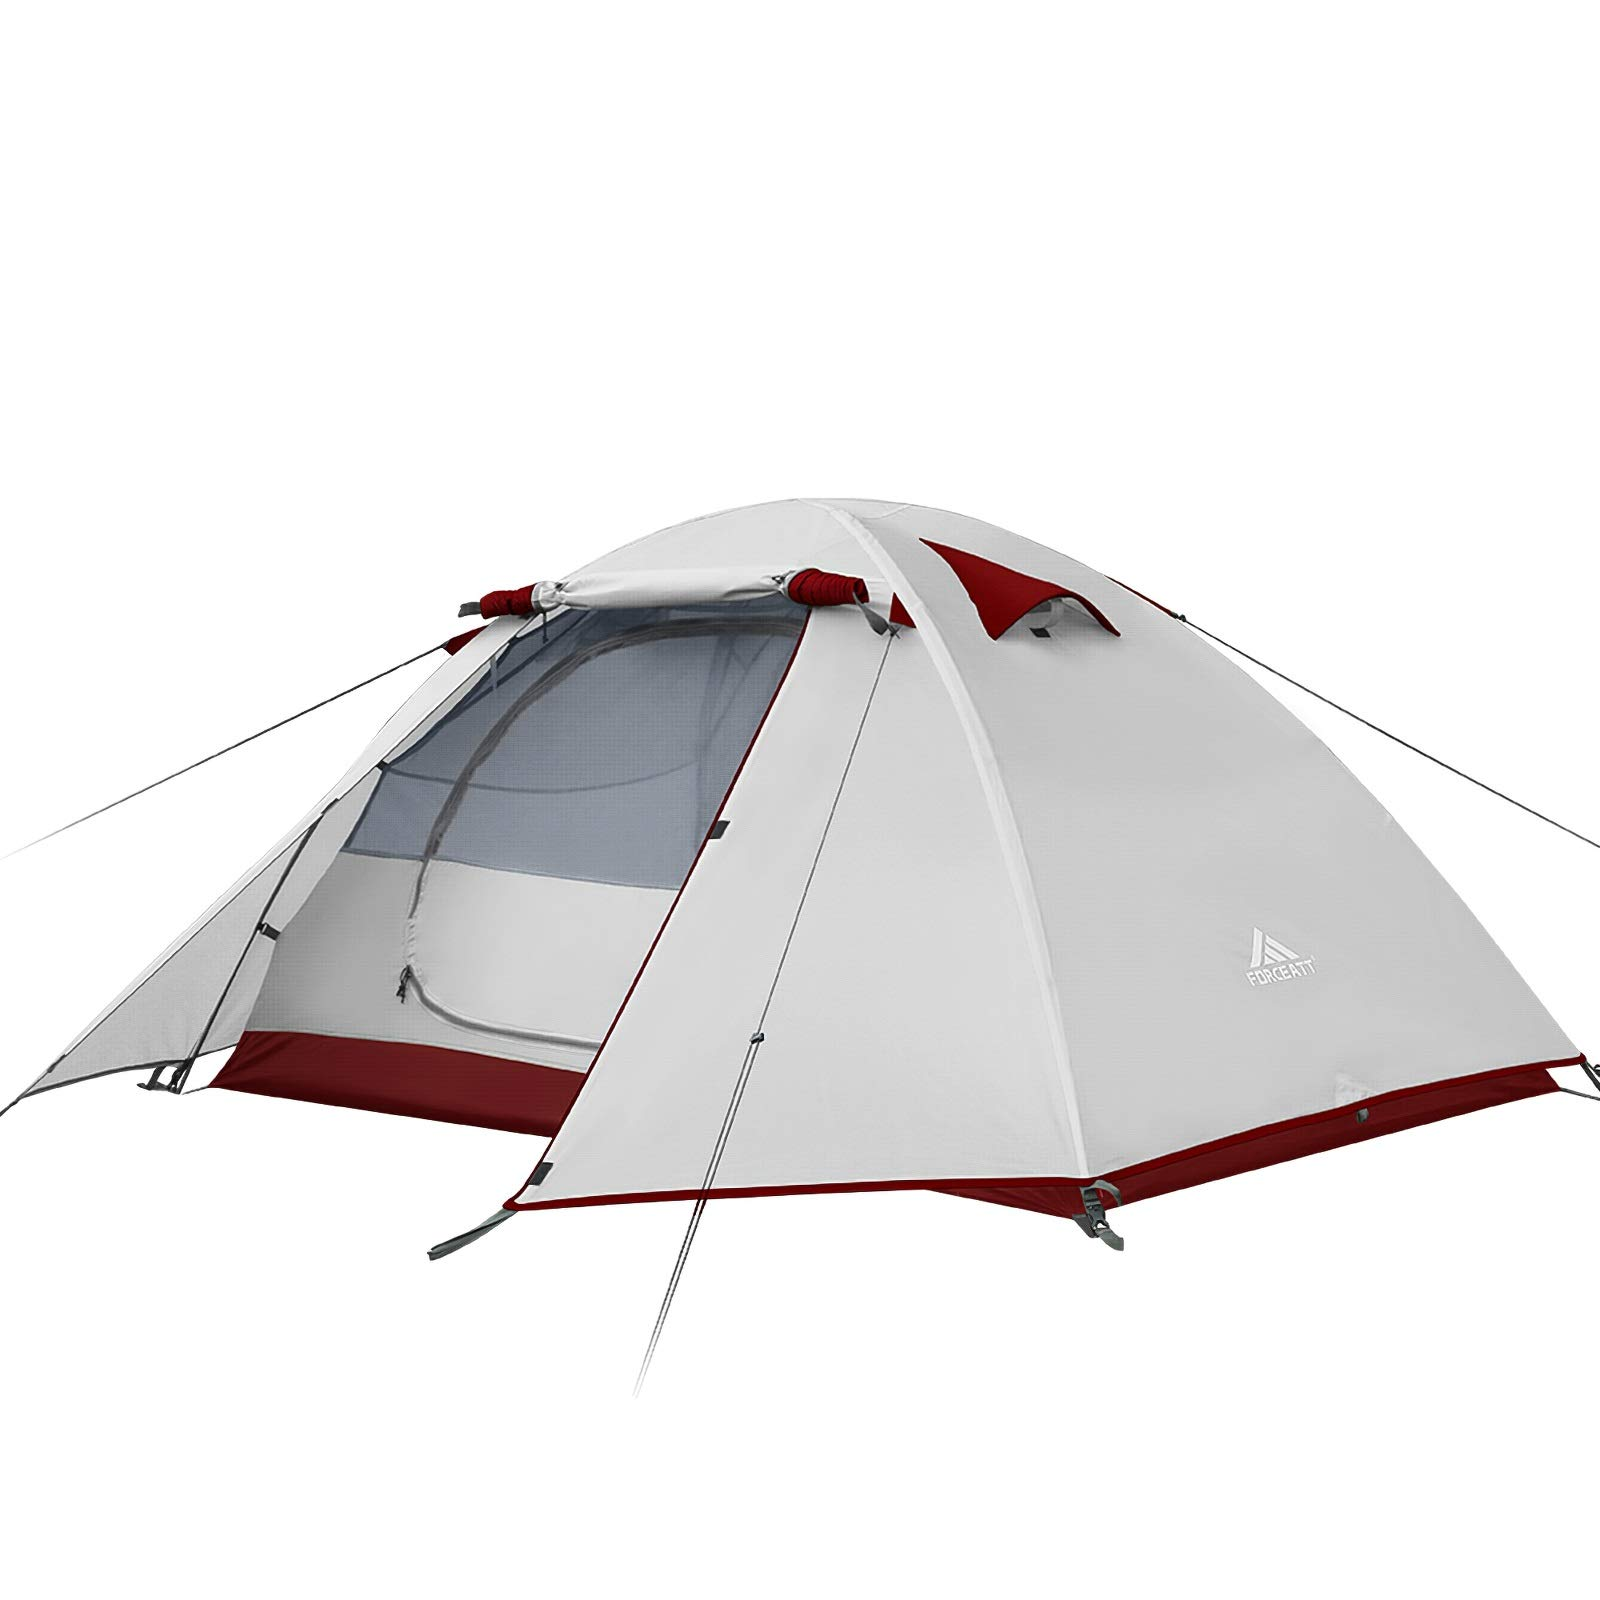 Forceatt Camping Tent 2 and 4 Person Tent, Waterproof & Windproof. Lightweight Backpacking Tent, Easy Setup, Suitable for Outdoor and Hiking Traveling